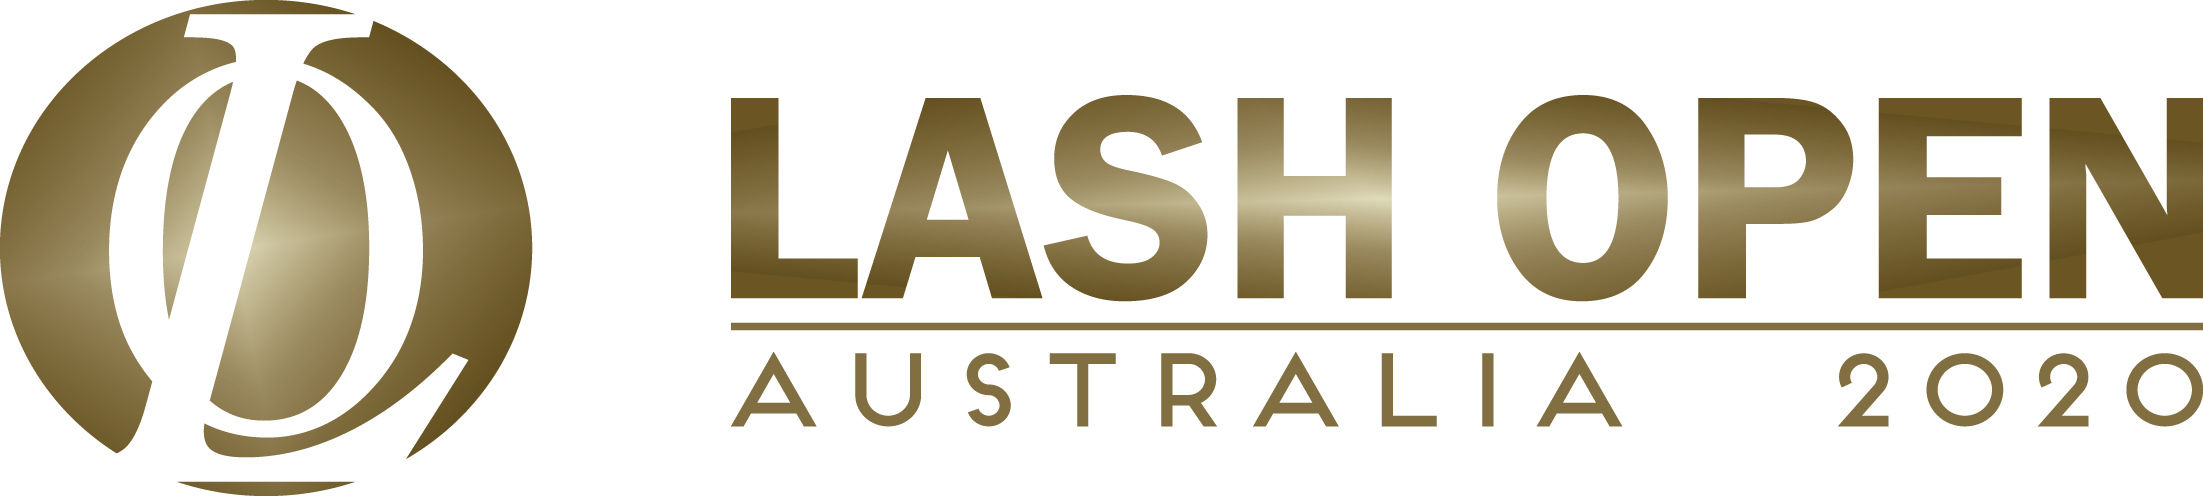 Australia Lash Open Gold Coast 2020